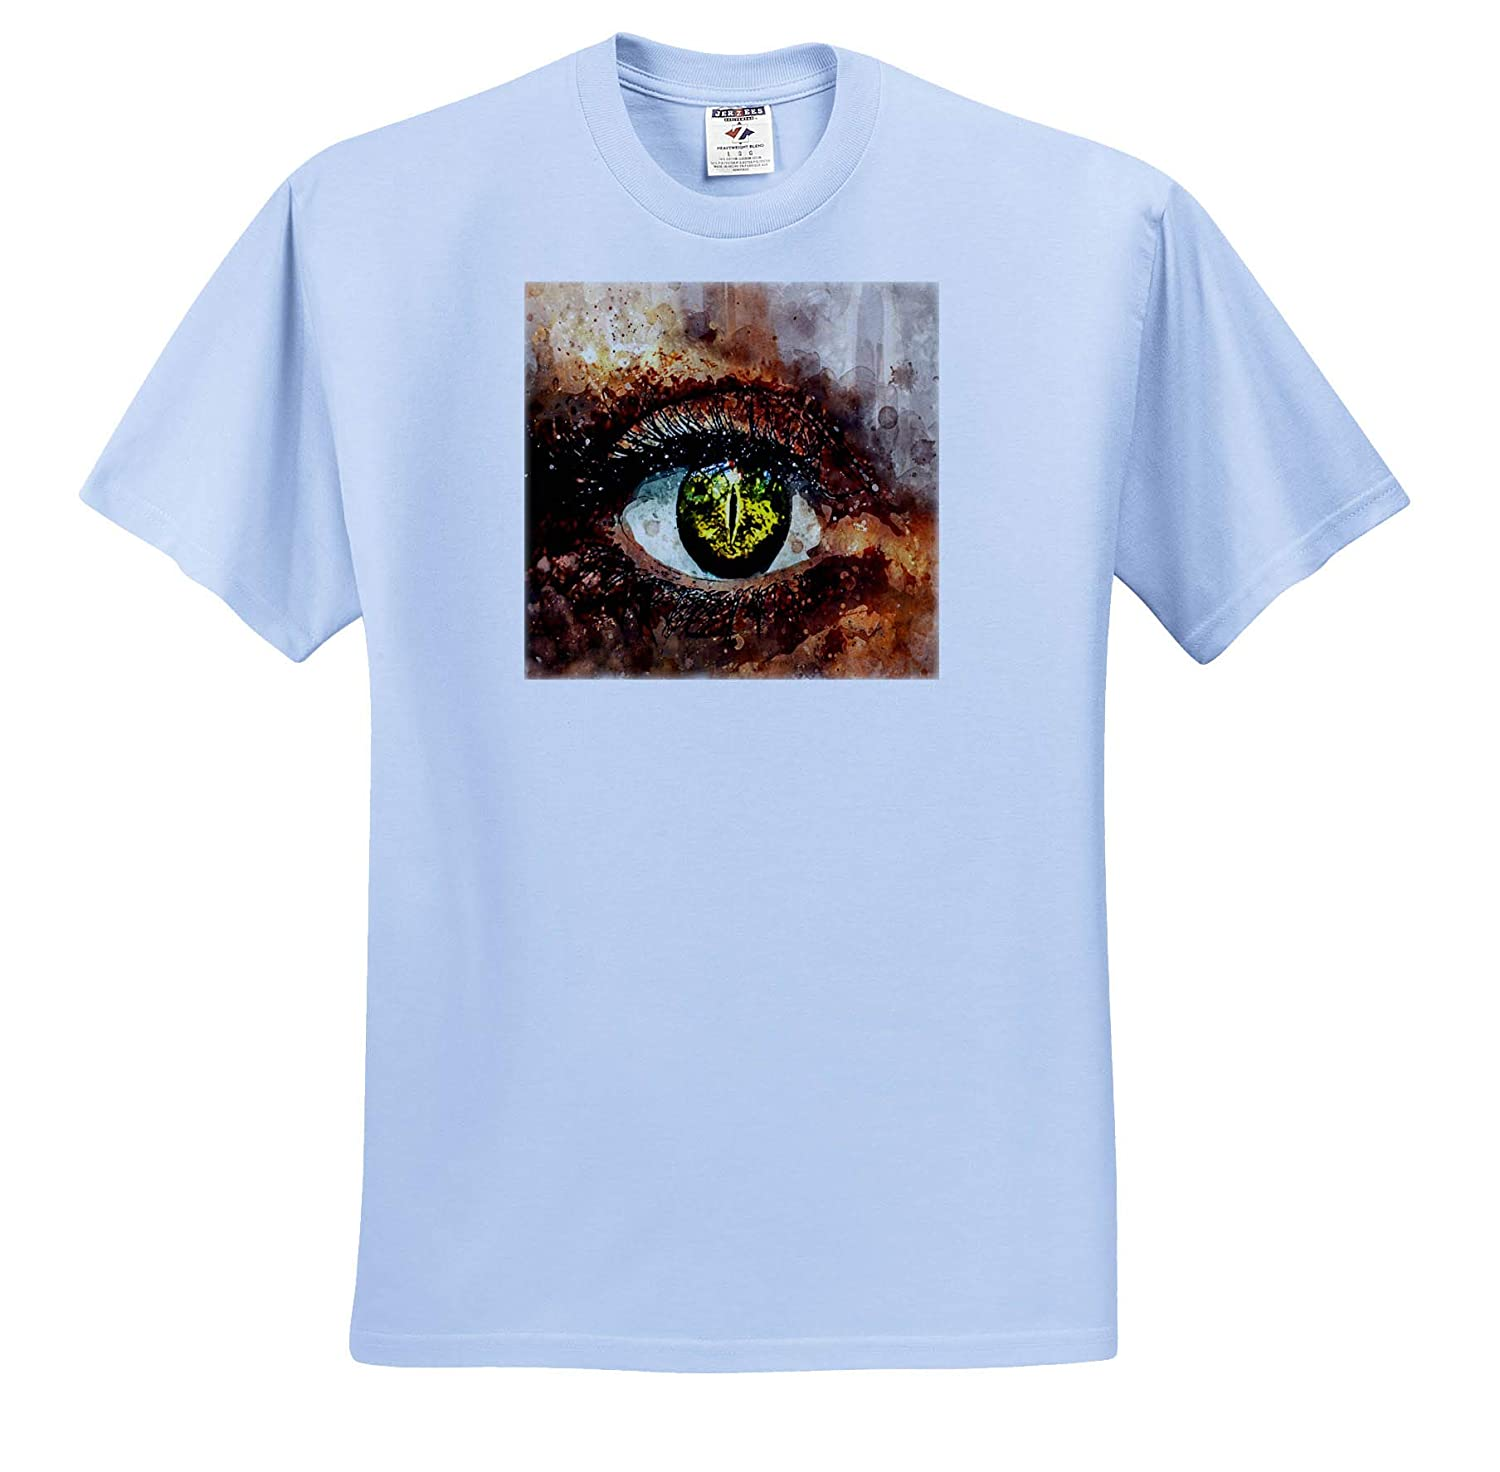 Watercolor Art T-Shirts 3dRose Lens Art by Florene Image of Watercolor of Human Eye in Closeup